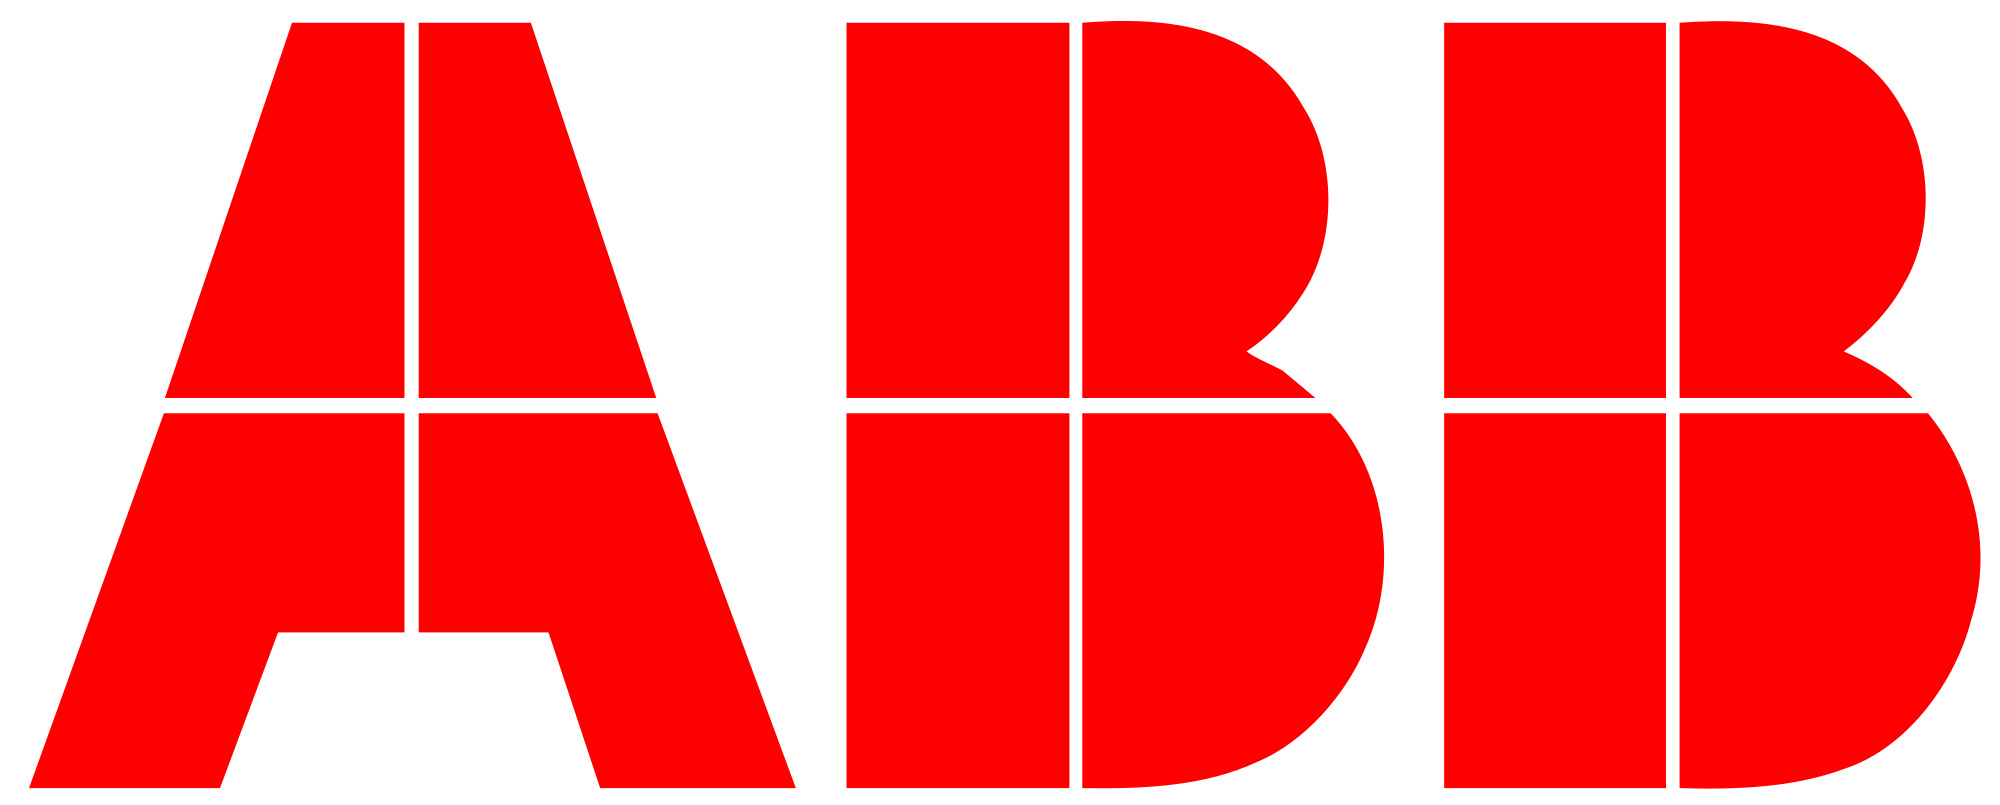 ABB Logo Wallpaper